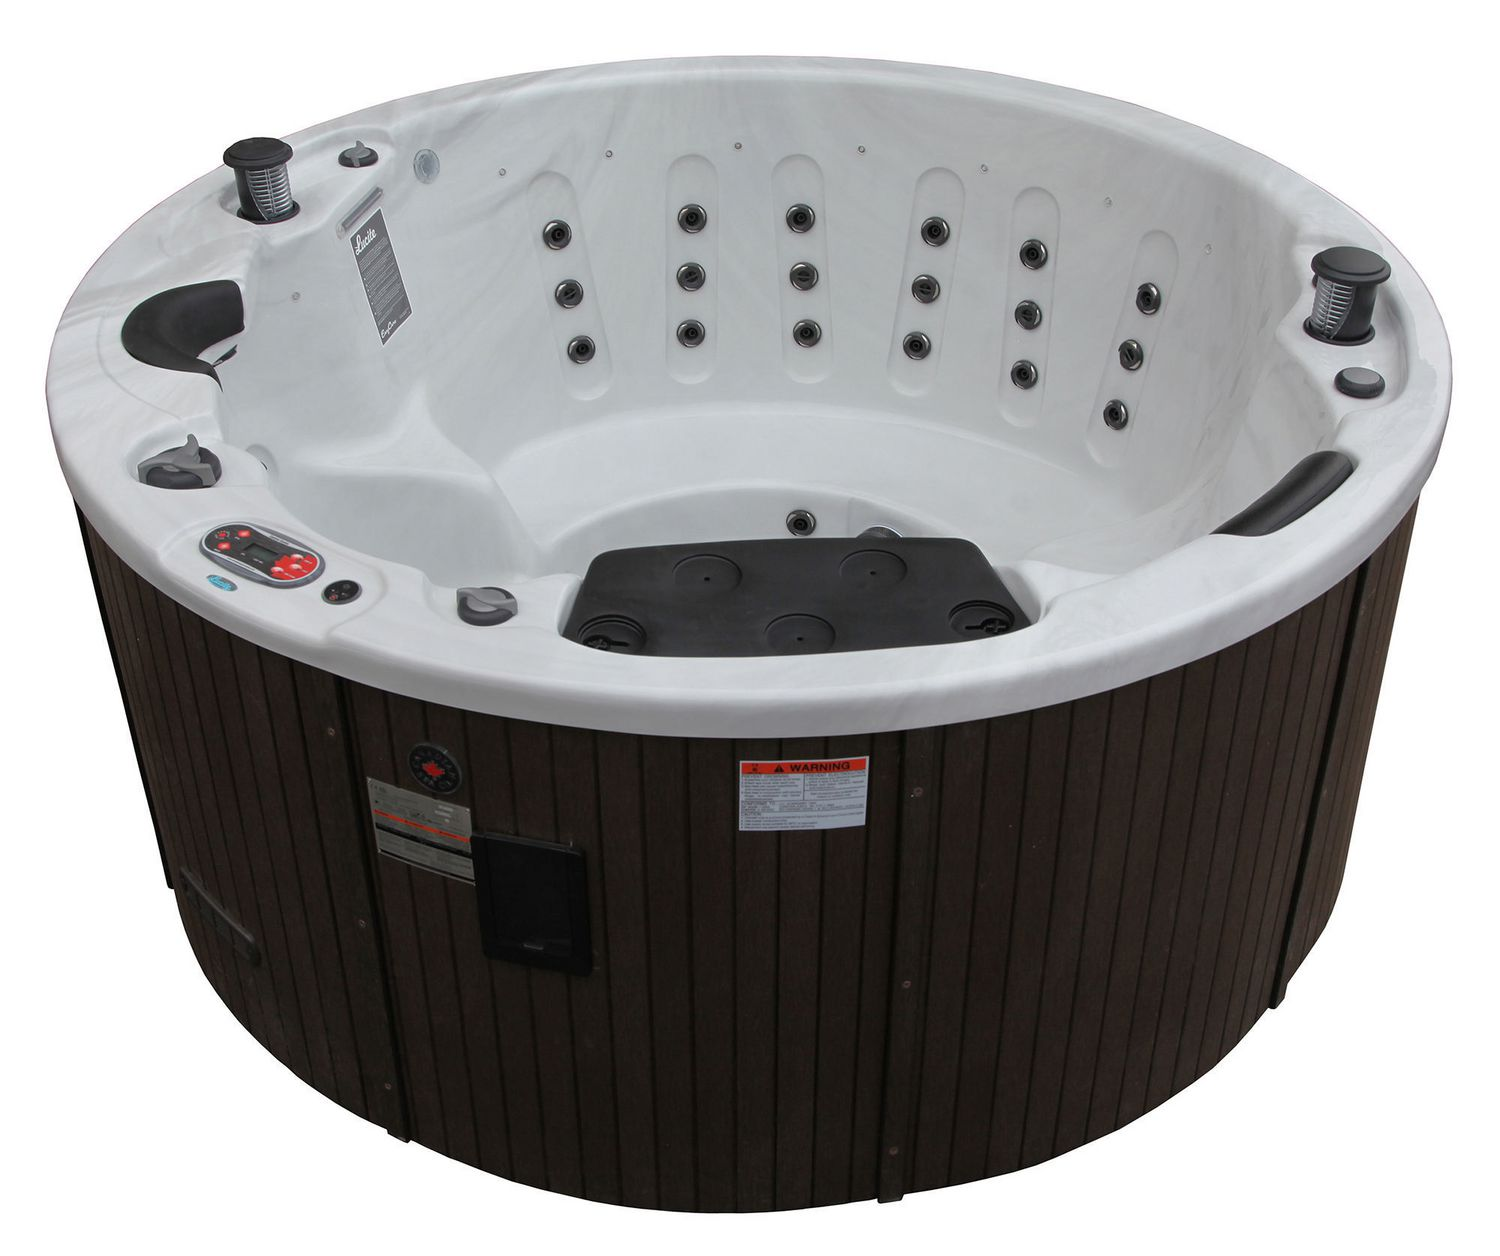 Canadian Spa Co. Ottawa 38 Jet Hot Tub | Walmart Canada